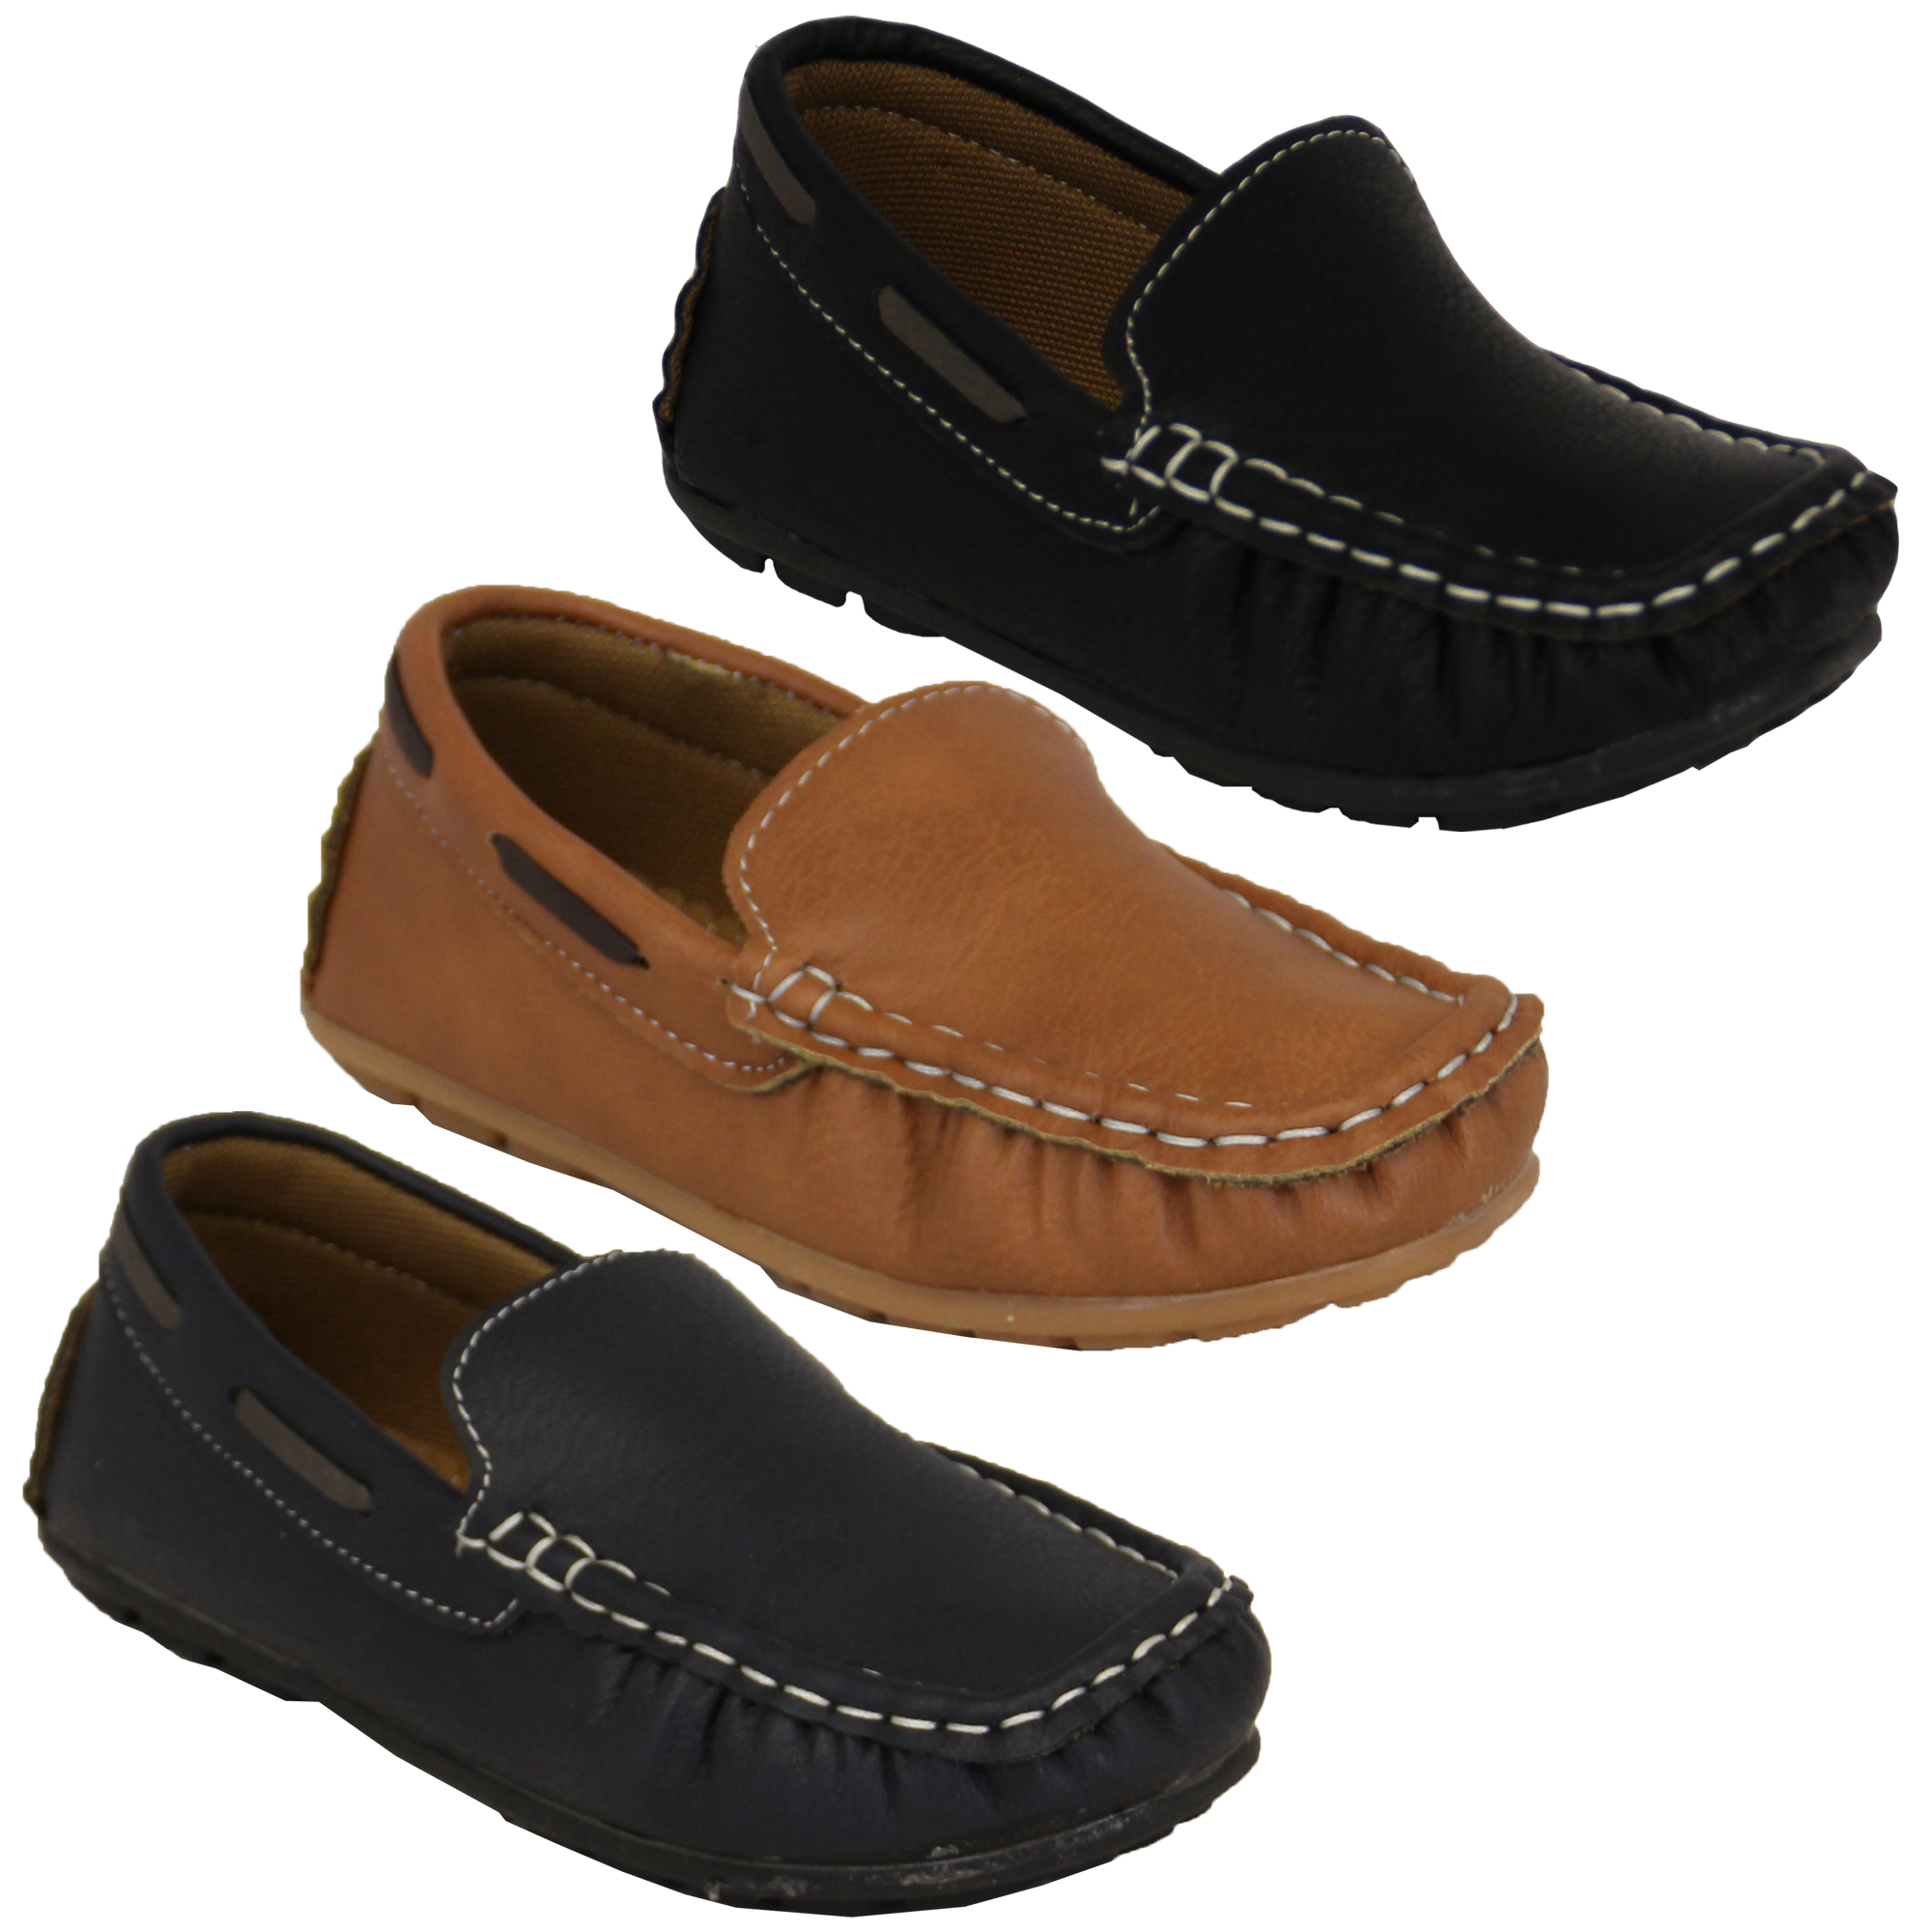 You searched for: kids moccasins boys! Etsy is the home to thousands of handmade, vintage, and one-of-a-kind products and gifts related to your search. No matter what you're looking for or where you are in the world, our global marketplace of sellers can help you .